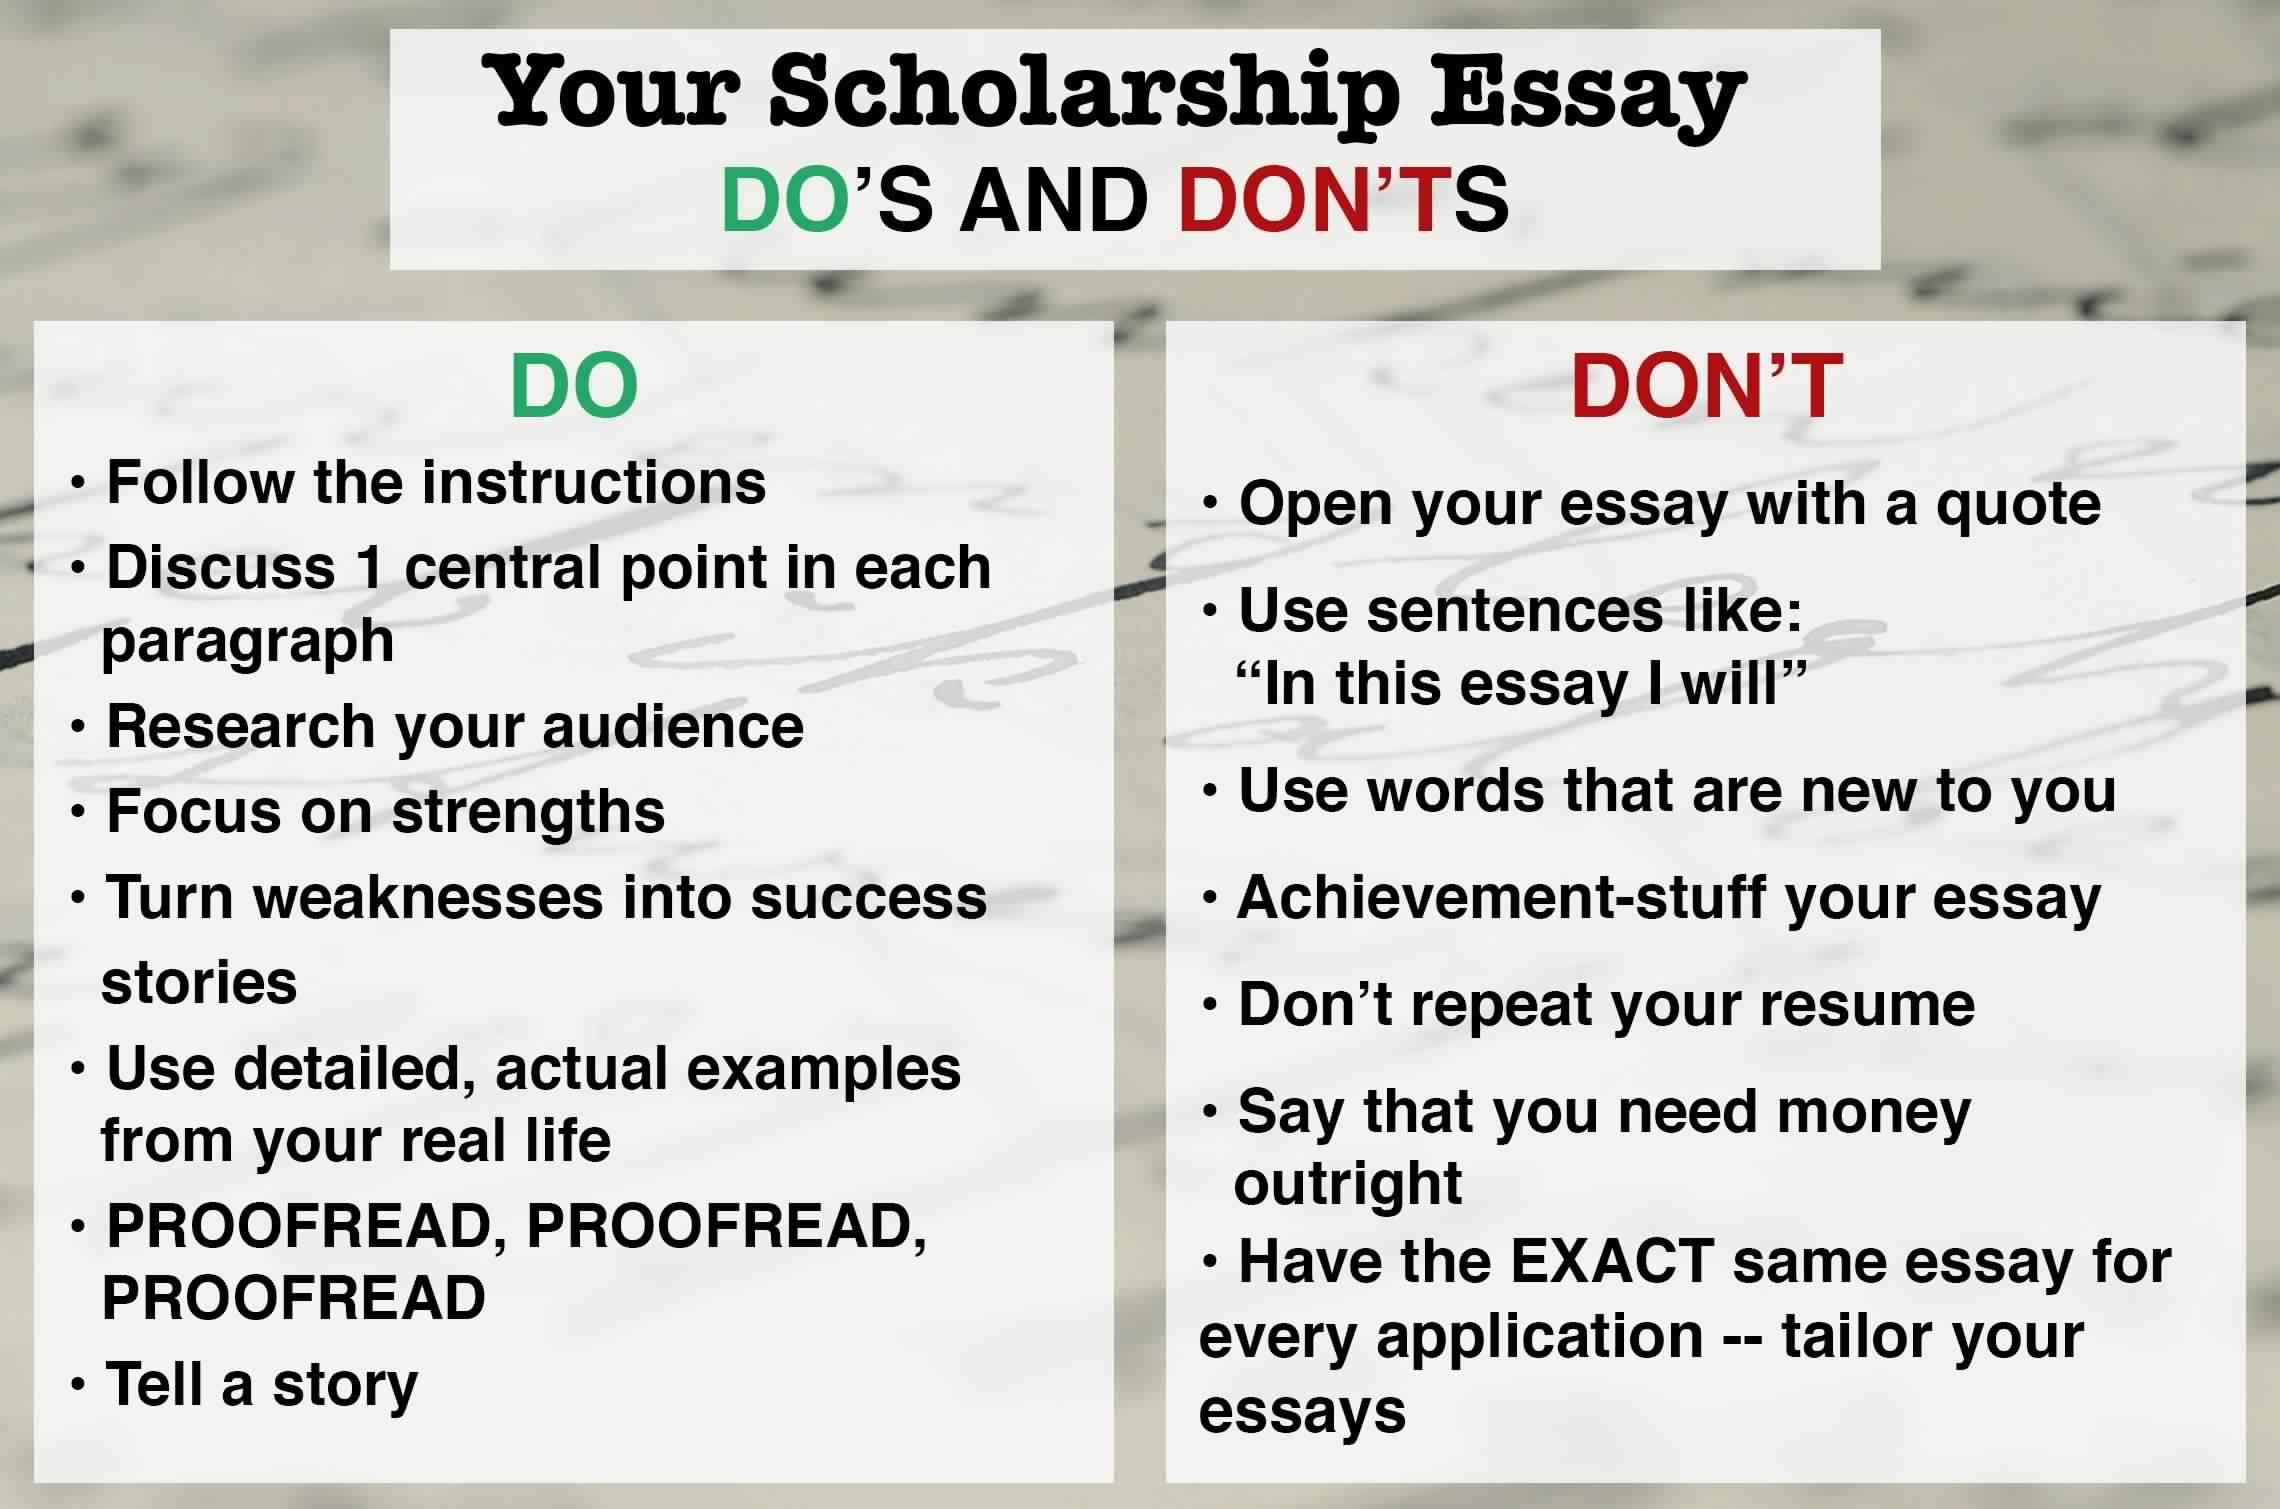 Write application essay